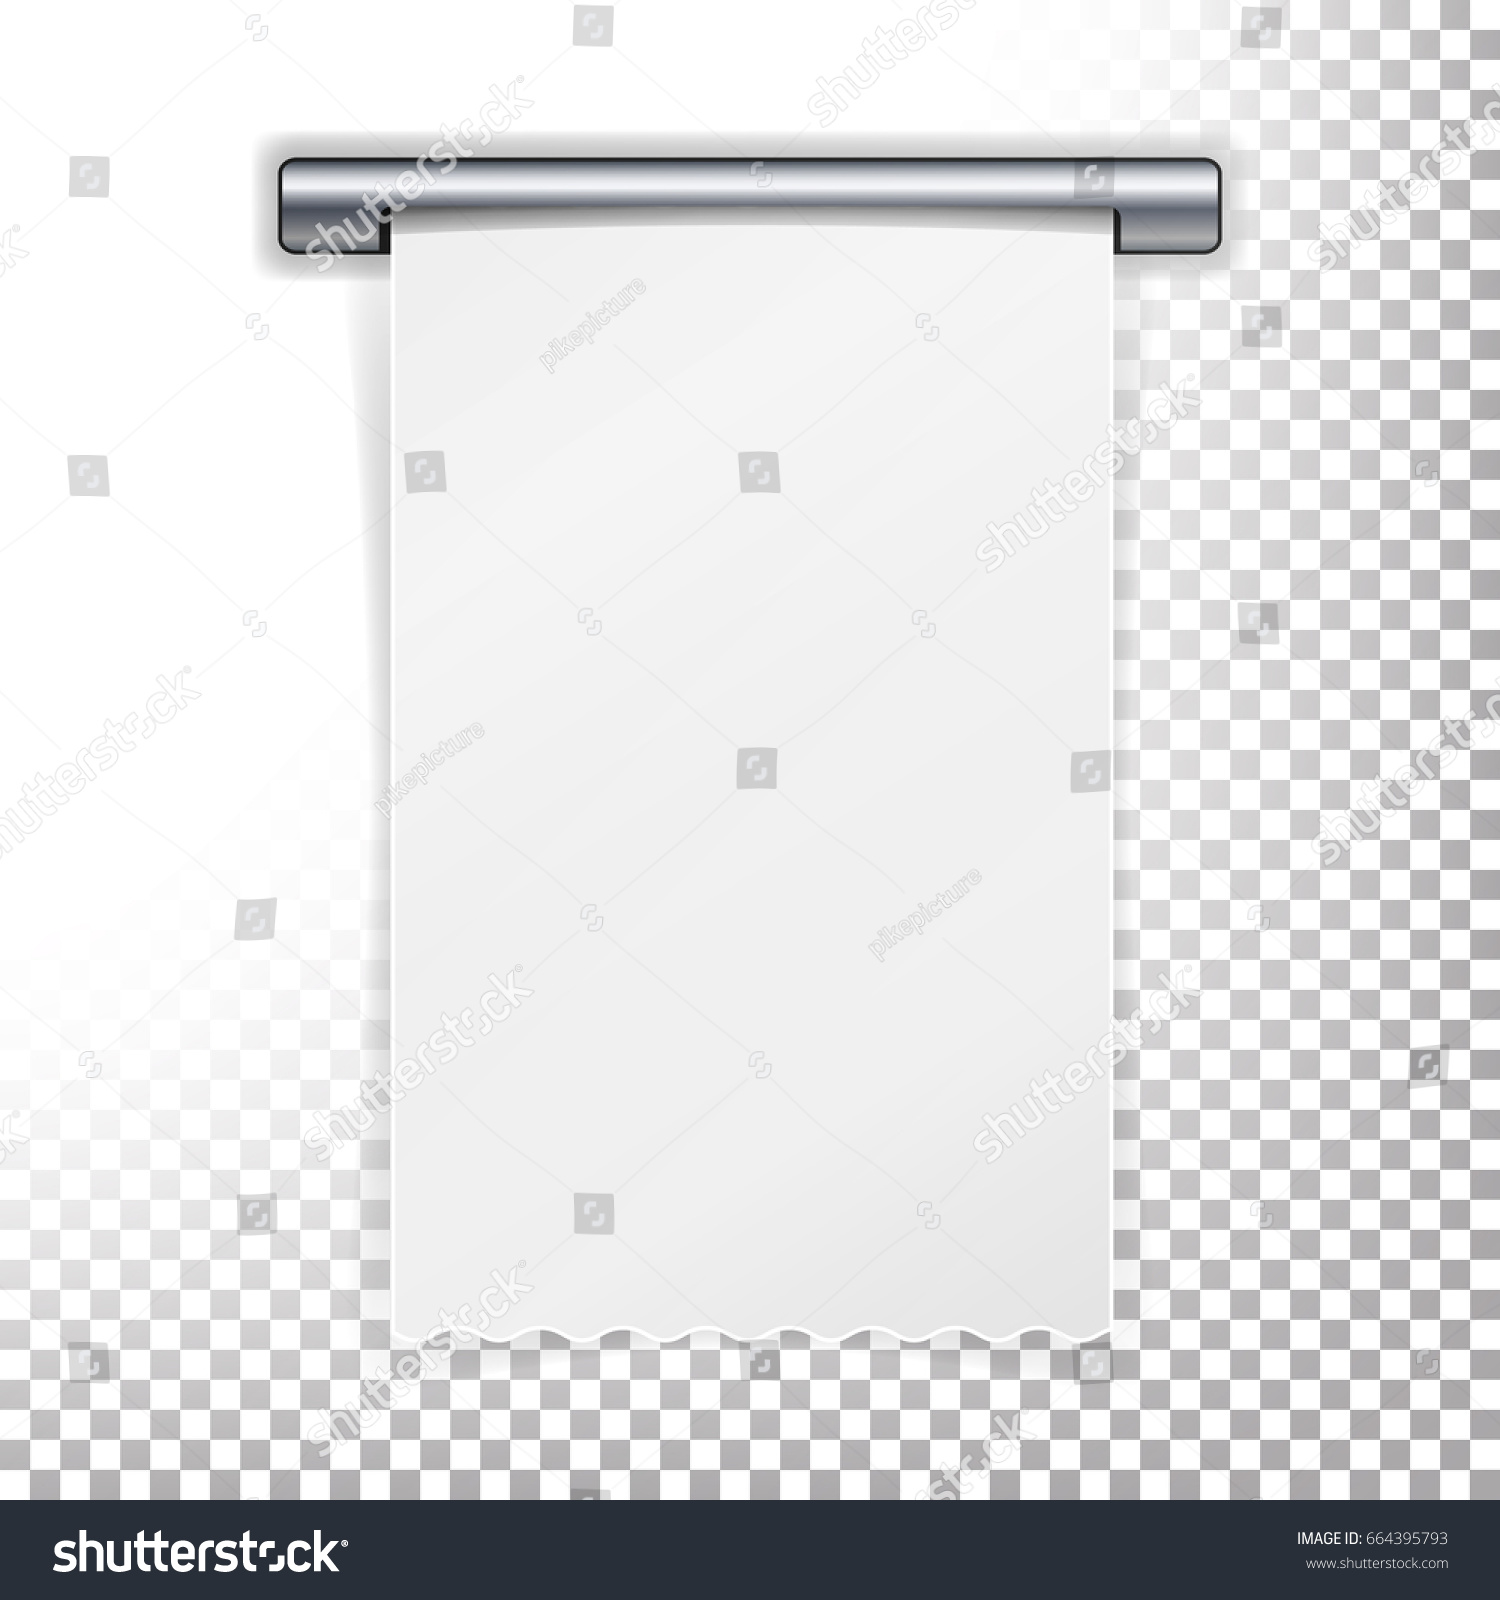 Royalty Free Stock Illustration Of Sales Printed Receipt Bill Atm